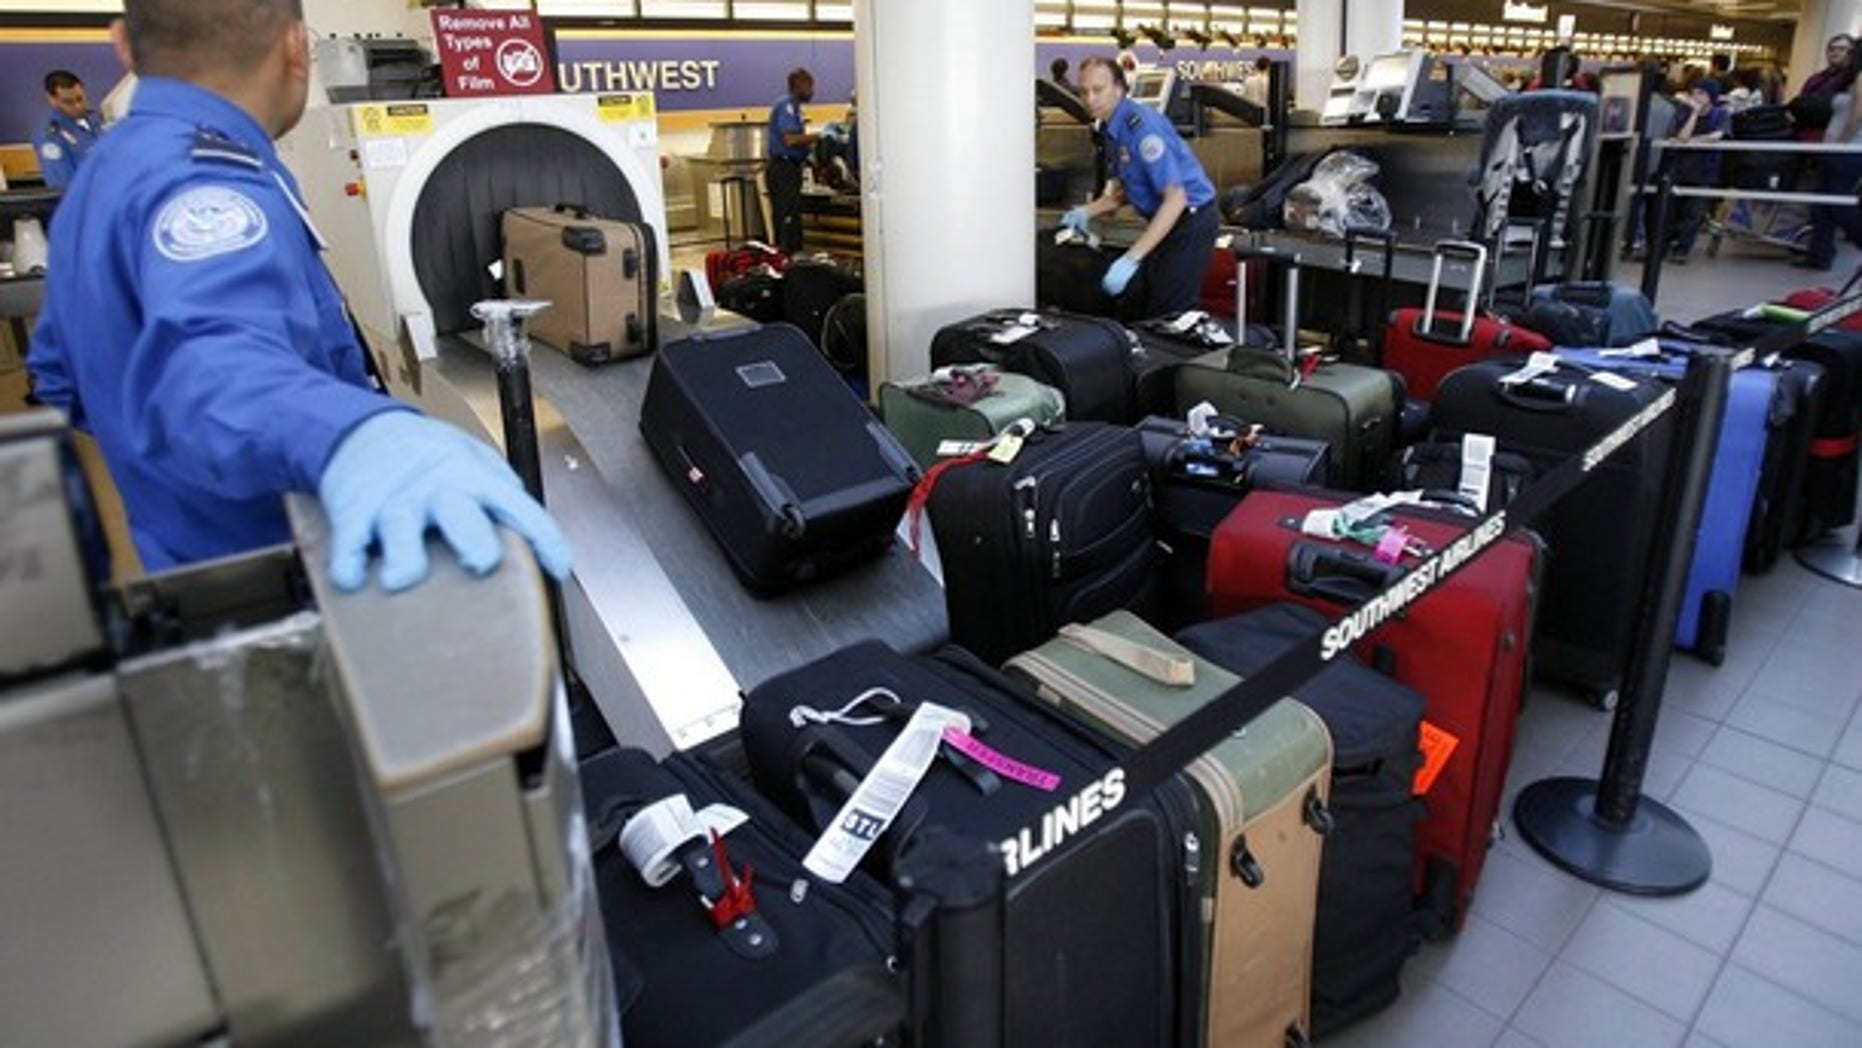 Transportation Security Administration officers put passengers' suitcases through an X-ray machine at Los Angeles International Airport Dec. 29. (Reuters Photo)